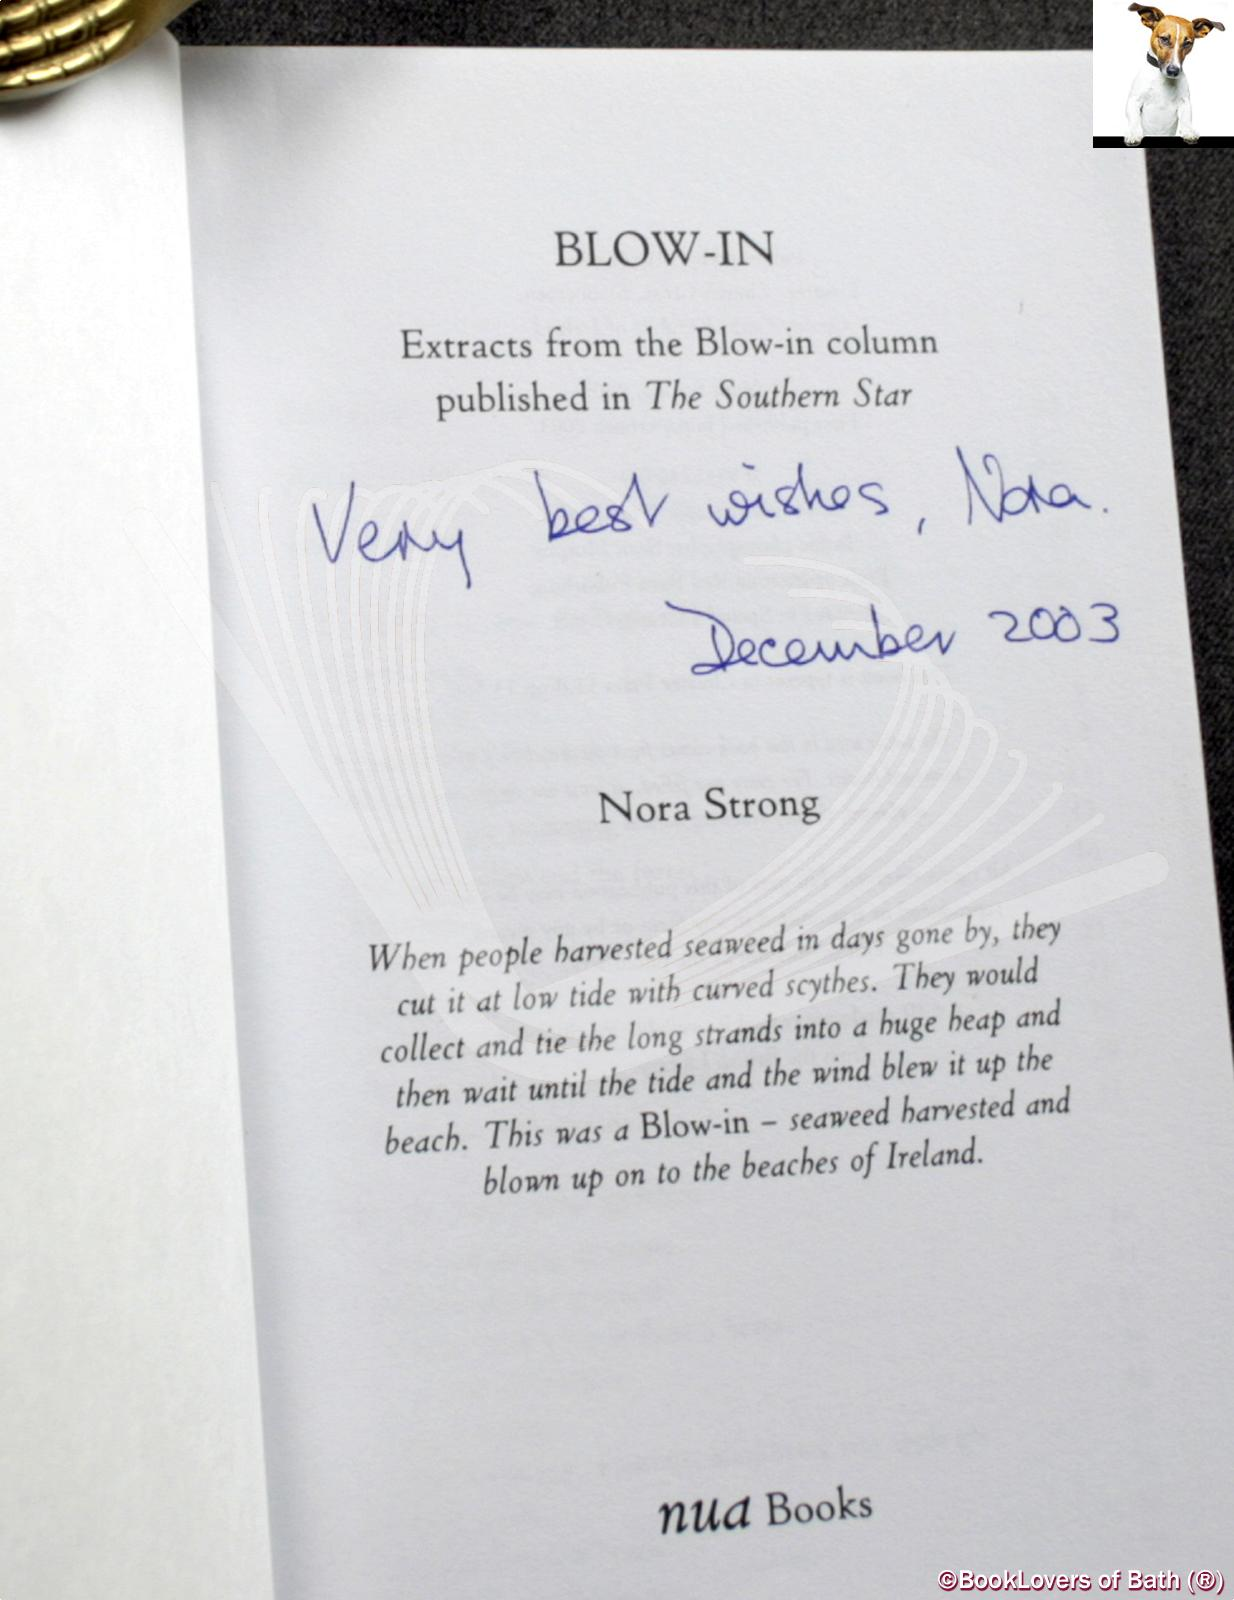 Blow-in - Nora Strong